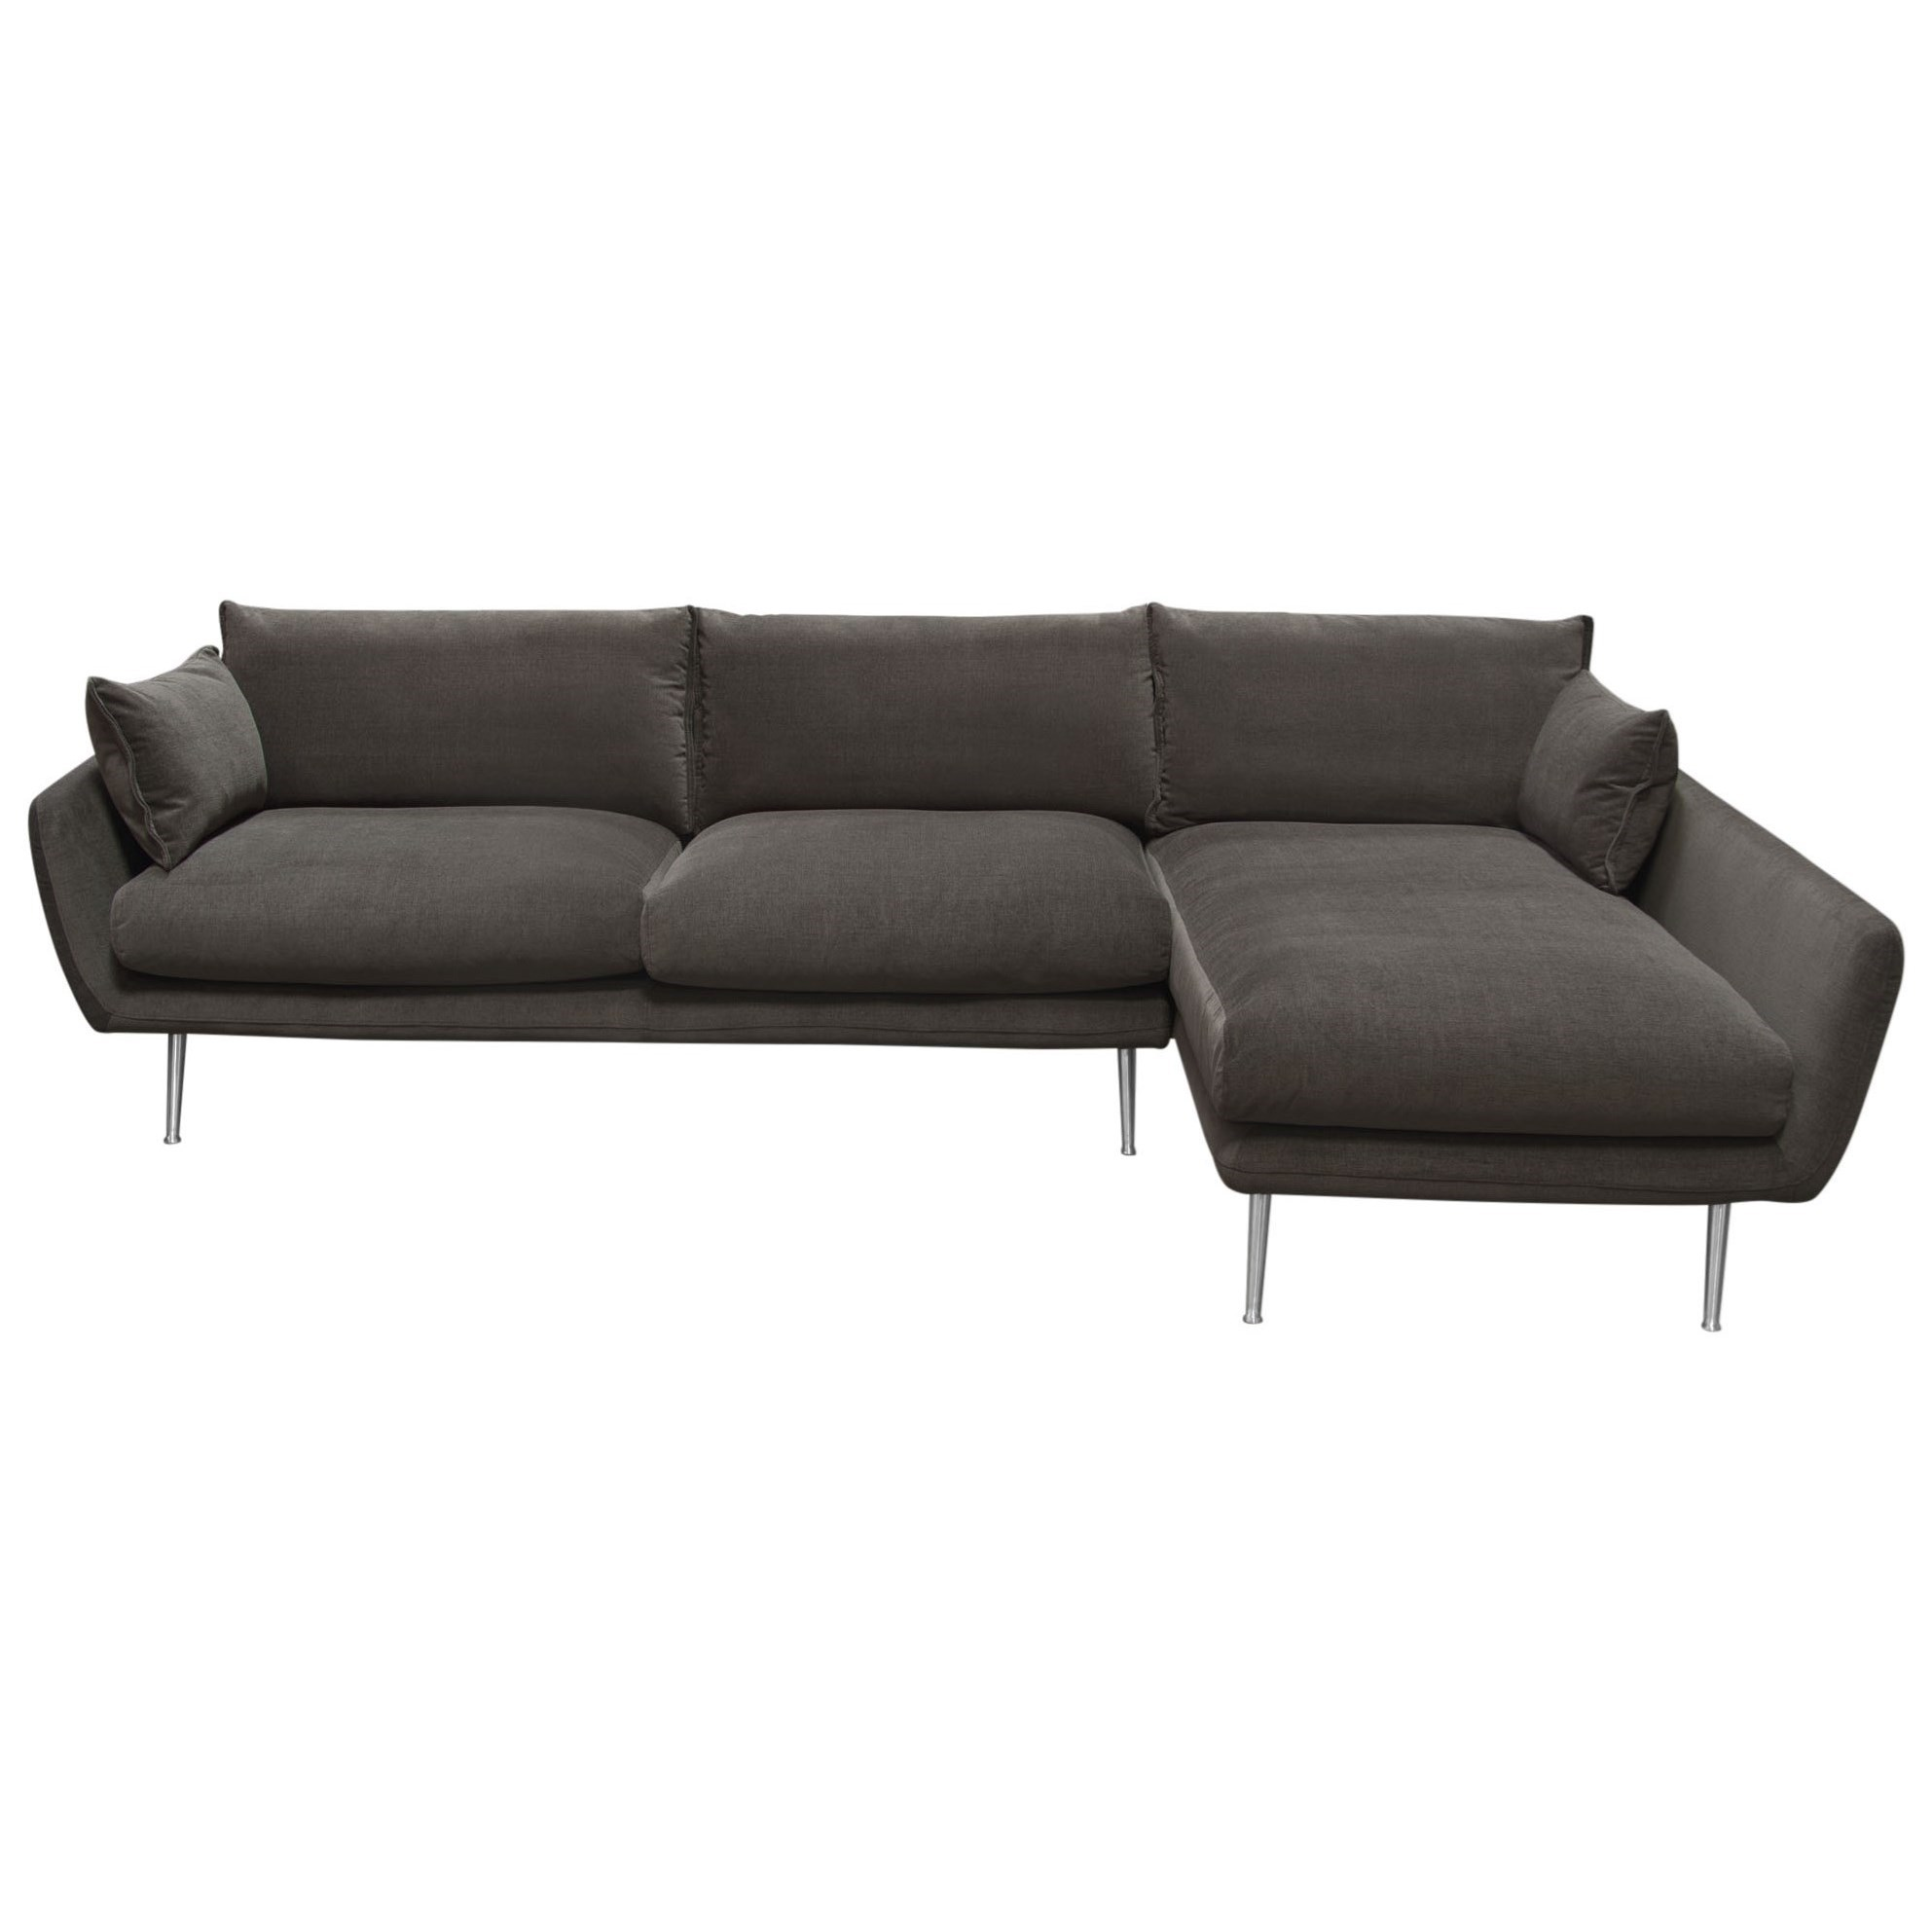 Vantage Sectional by Diamond Sofa at Red Knot